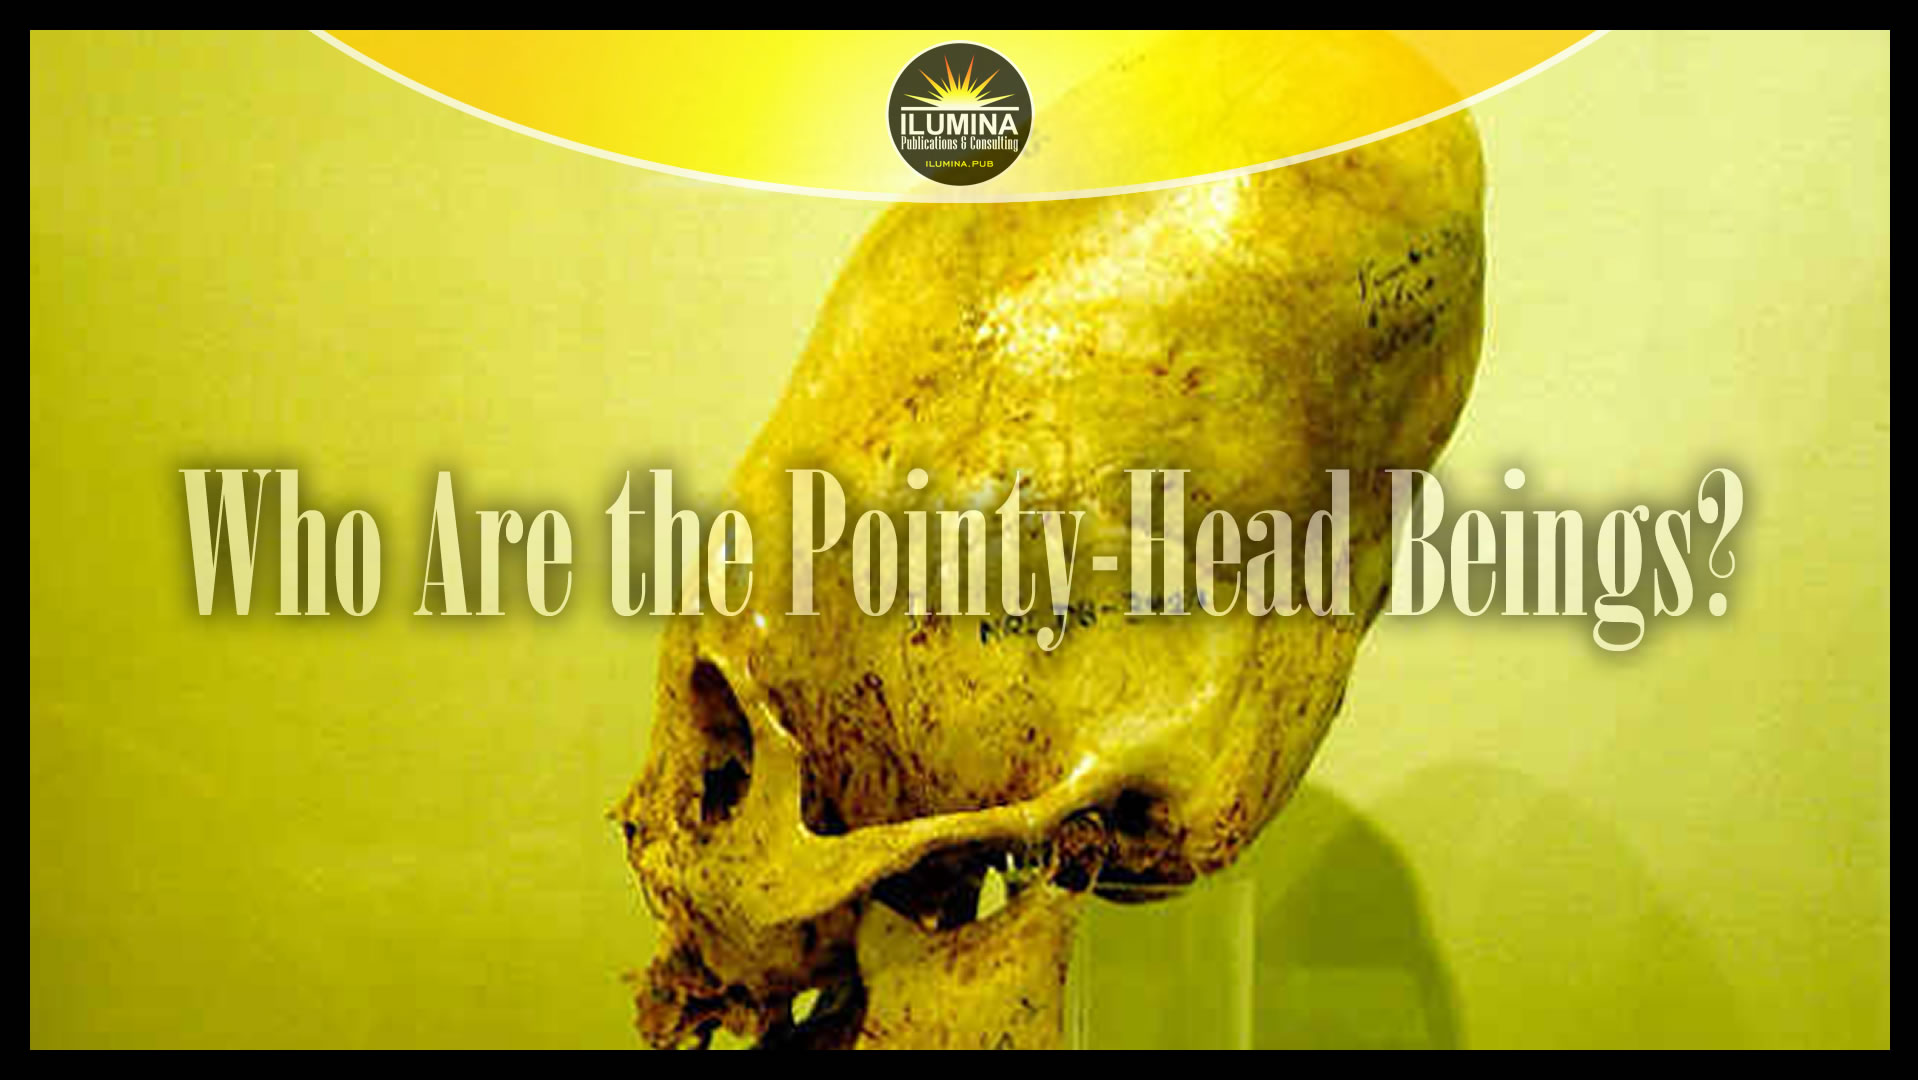 Who Are the Pointy-Head Beings?